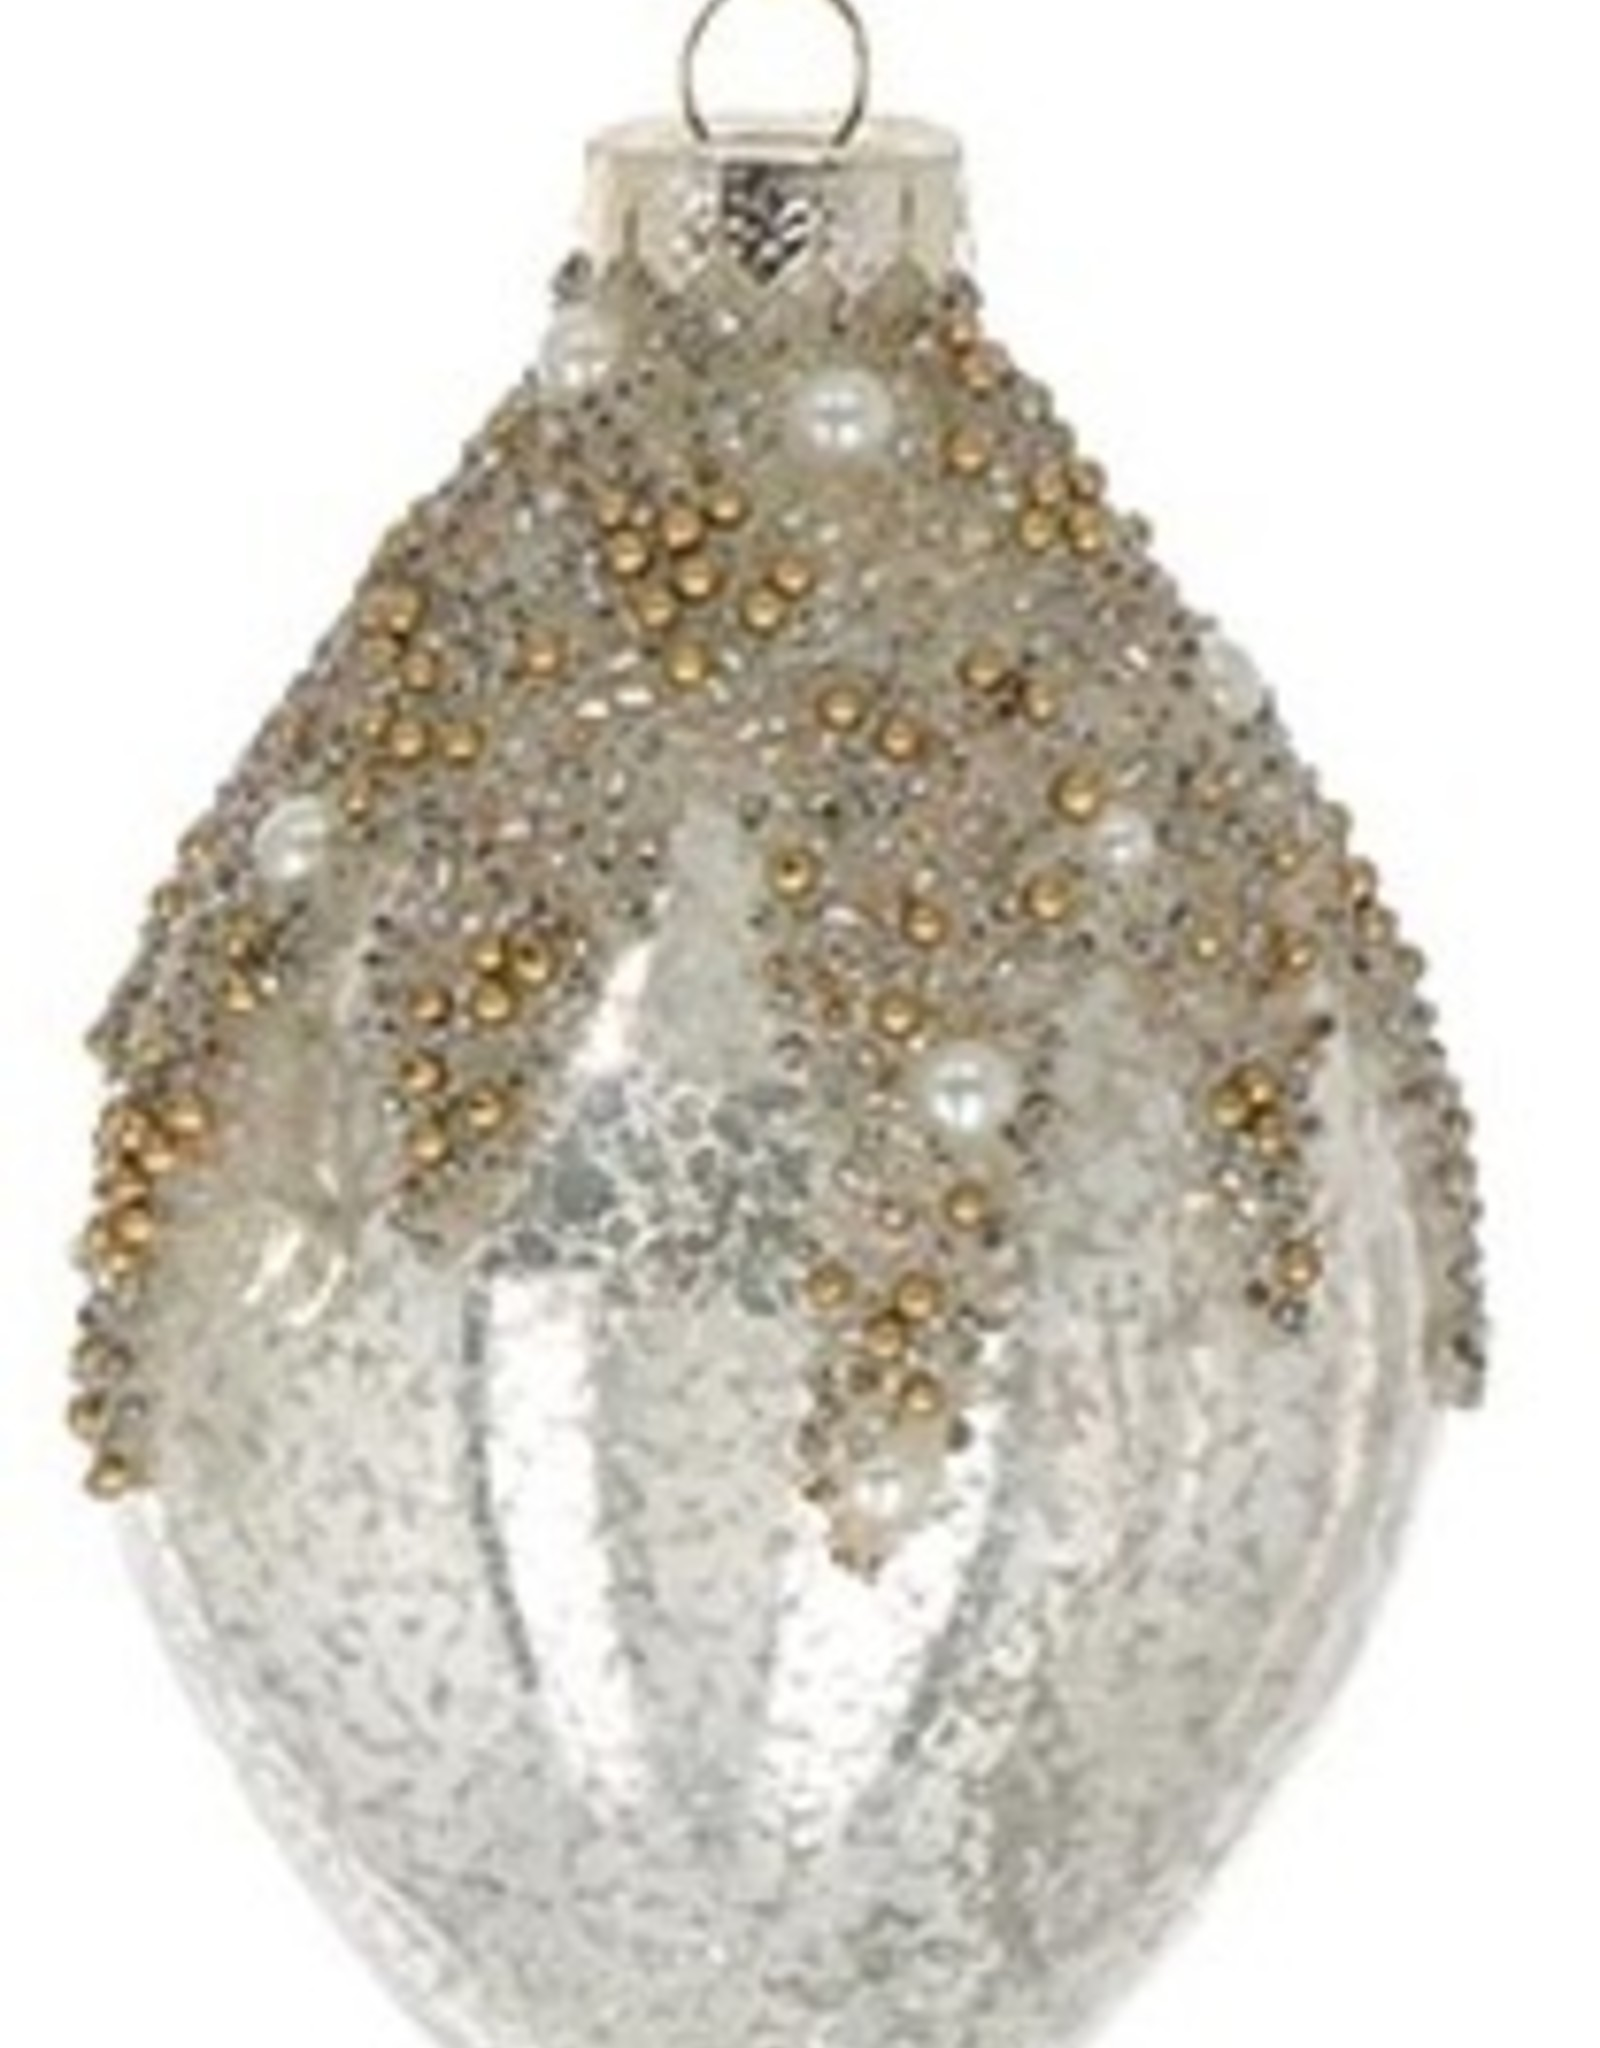 Wink Tear Drop Glass Mercury Ornament with Glitter and Pearls